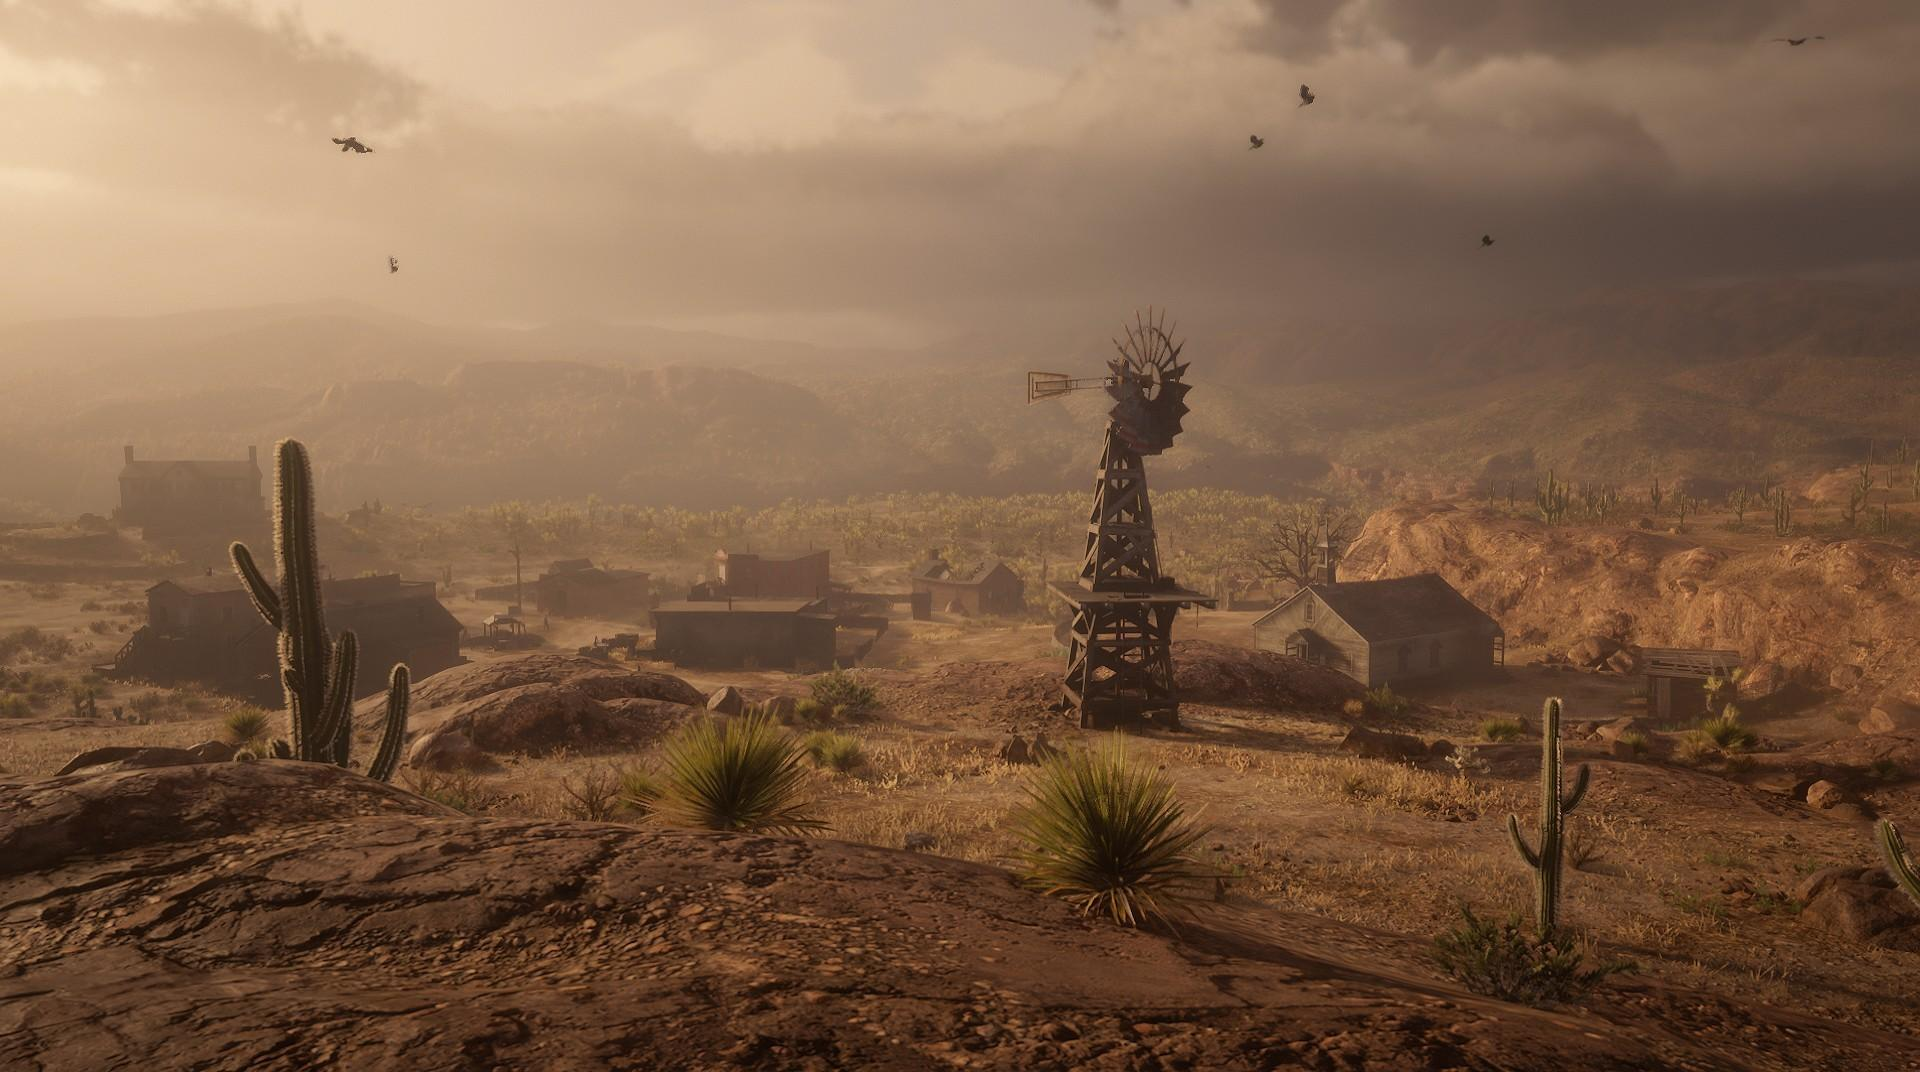 New Austin - Red Dead Redemption 2 Locations - Red Dead